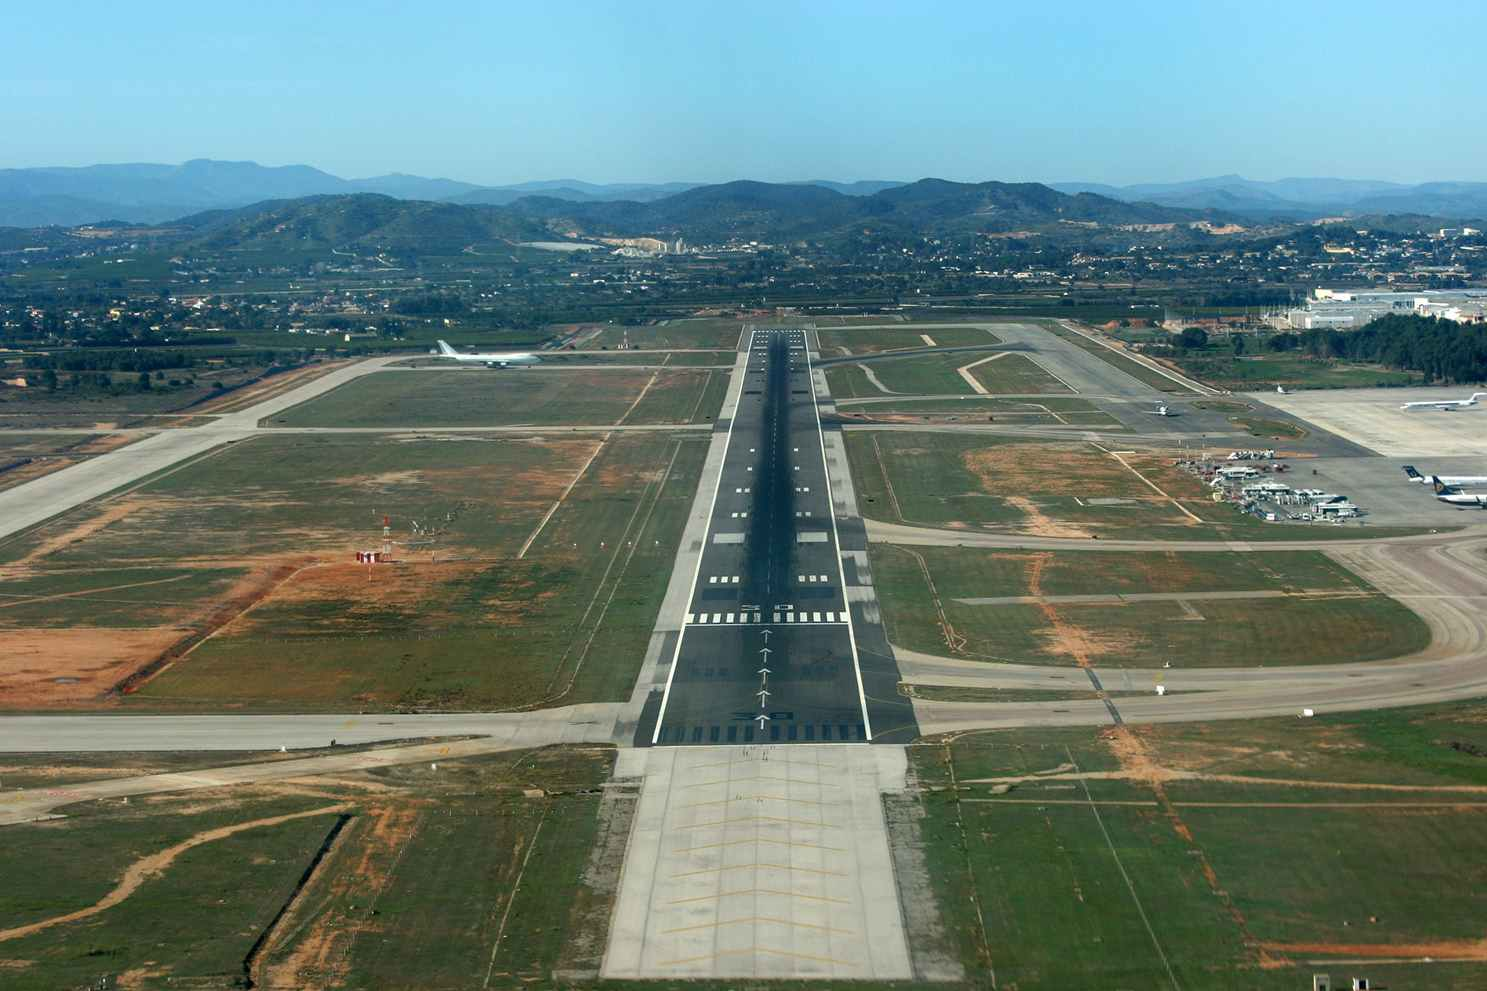 https://zeppeline.es/wp-content/uploads/2015/09/vista-area-aeropuerto-video-fotografia-aerea.jpg